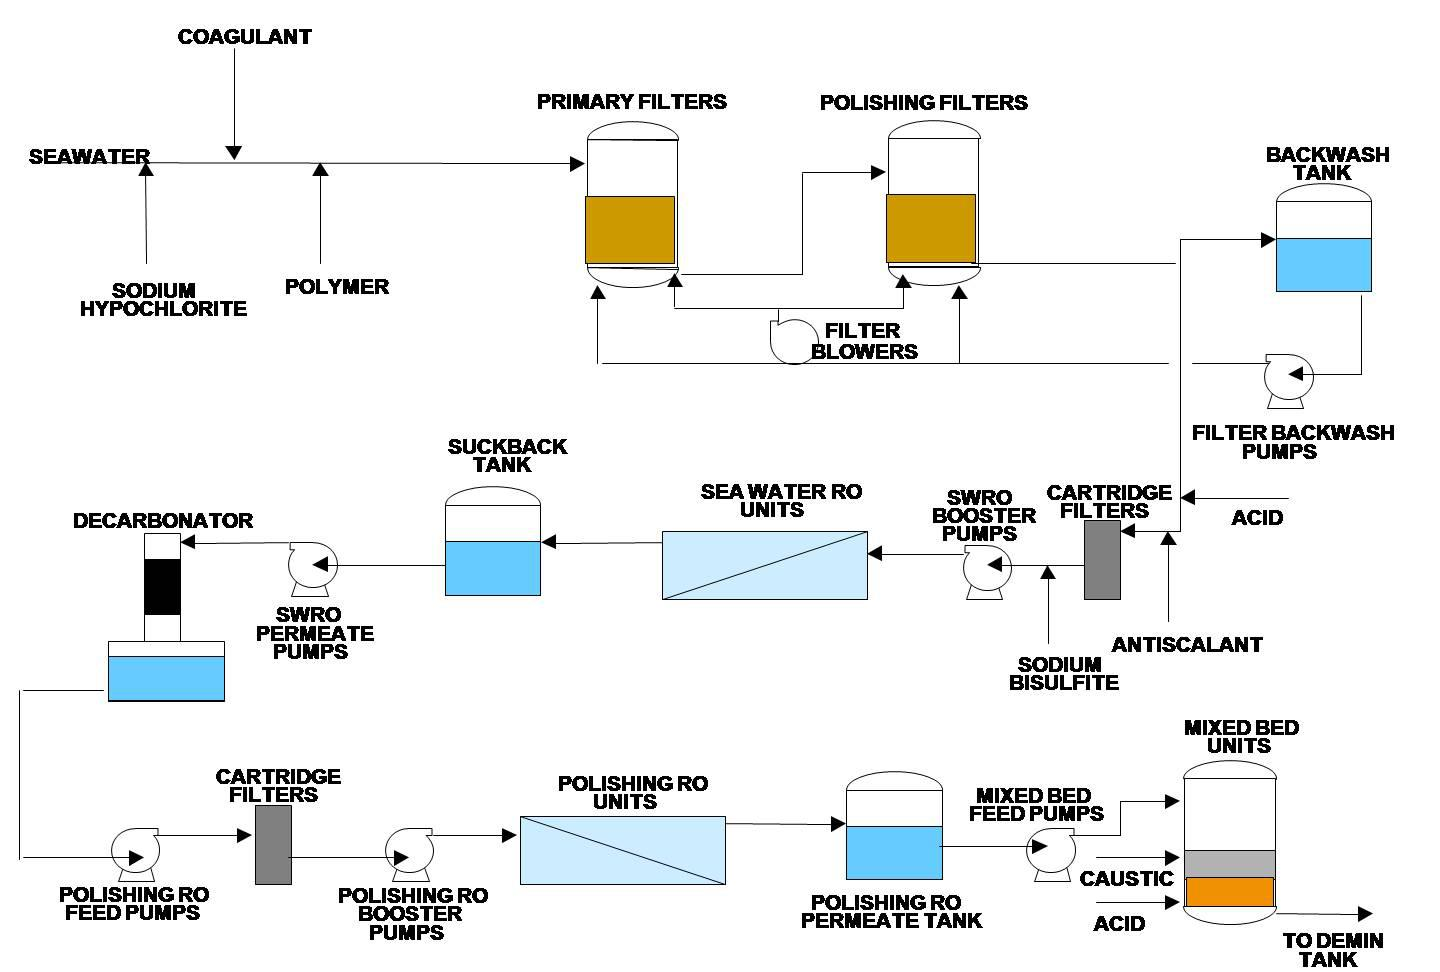 Cement manufacturing process flow chart images free any chart petroleum and petrochemical waste reuse in cement kilns natural cement plant process flow chart image collections nvjuhfo Gallery